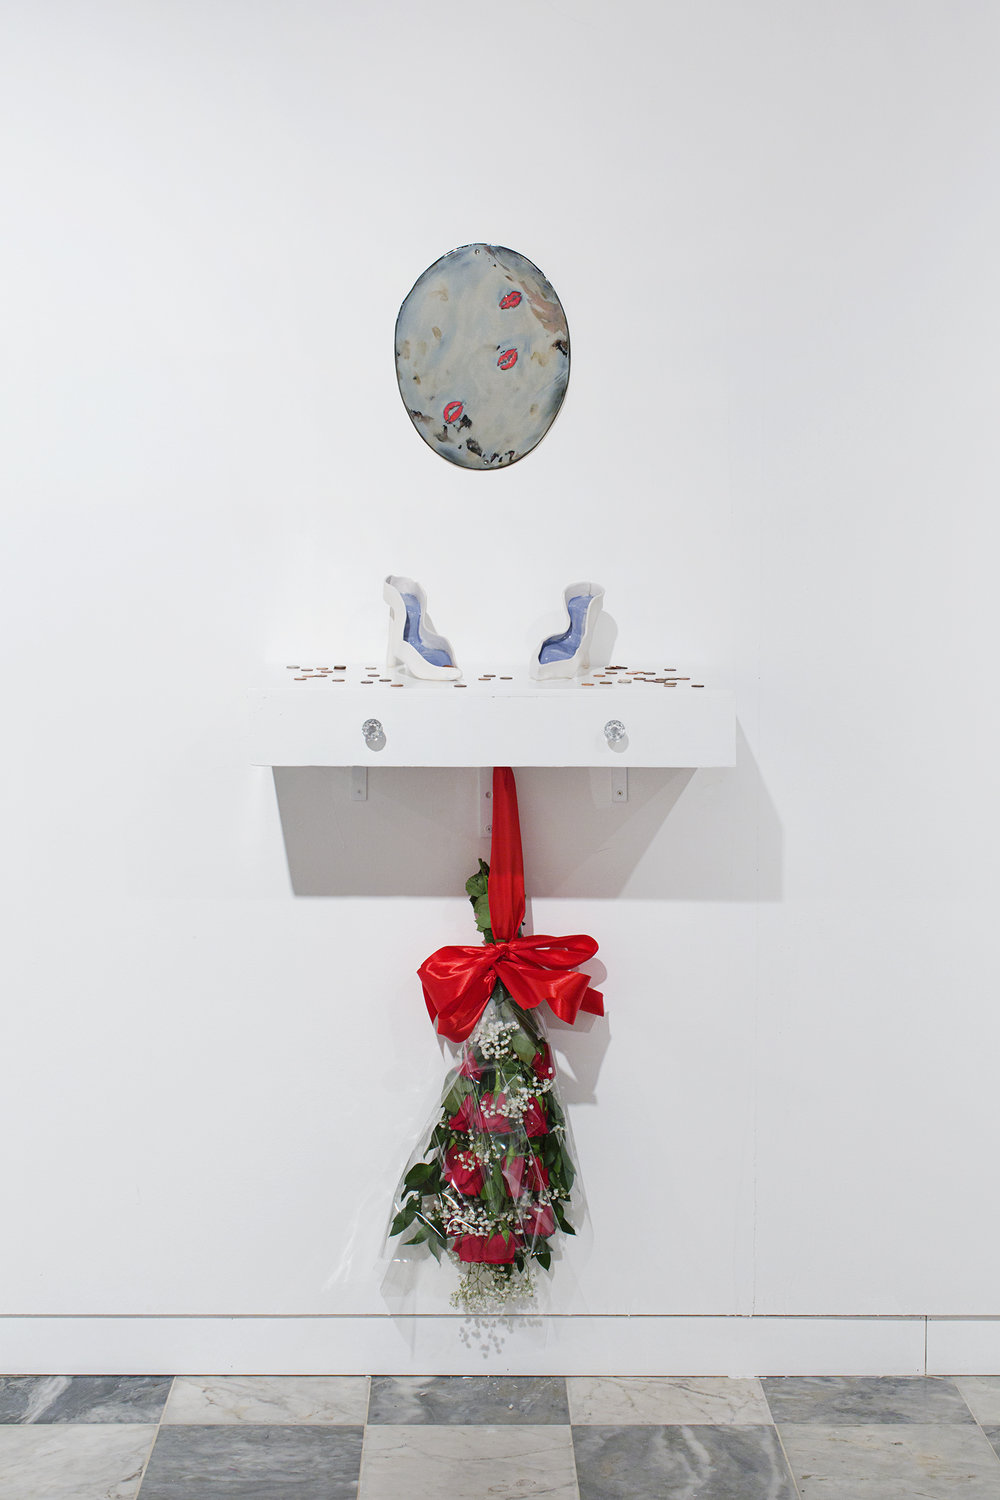 """Zuleyka Rivera, Miss Universe 2006, 2018   Porcelain mirror, porcelain wishing well shoes on vanity, pennies, nickels, dimes, red roses, silk, cellophane, baby's breath, hardware Porcelain mirror 14 x 8"""" (35.6 x 20.3 cm), vanity shelf 12 x 28 x 4.5"""" (30.5 x 71.1 x 11.4   cm) Overall dimensions variable"""